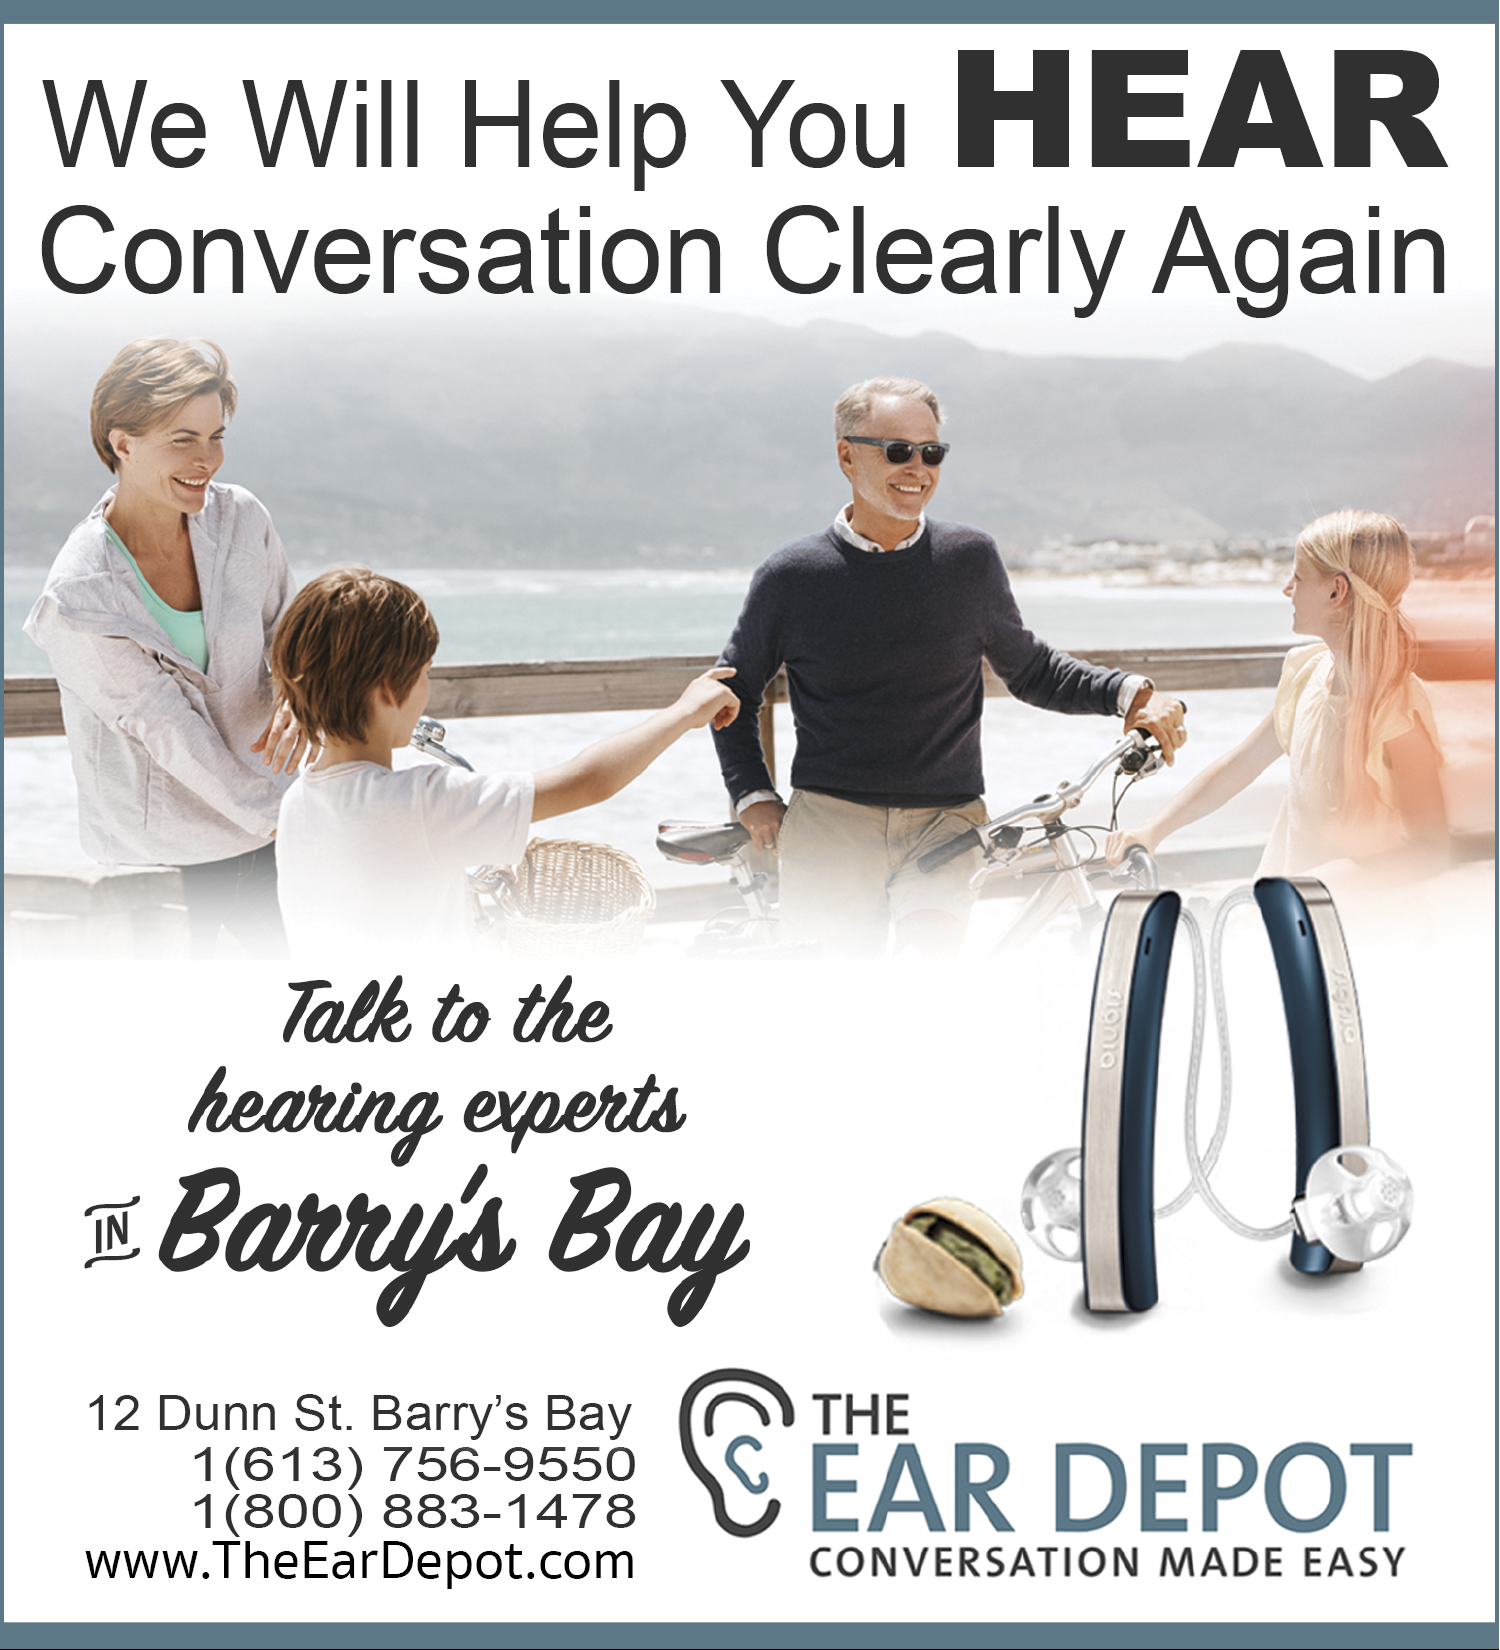 03-20-The-Ear-Depot-NEW-3x5.5.png